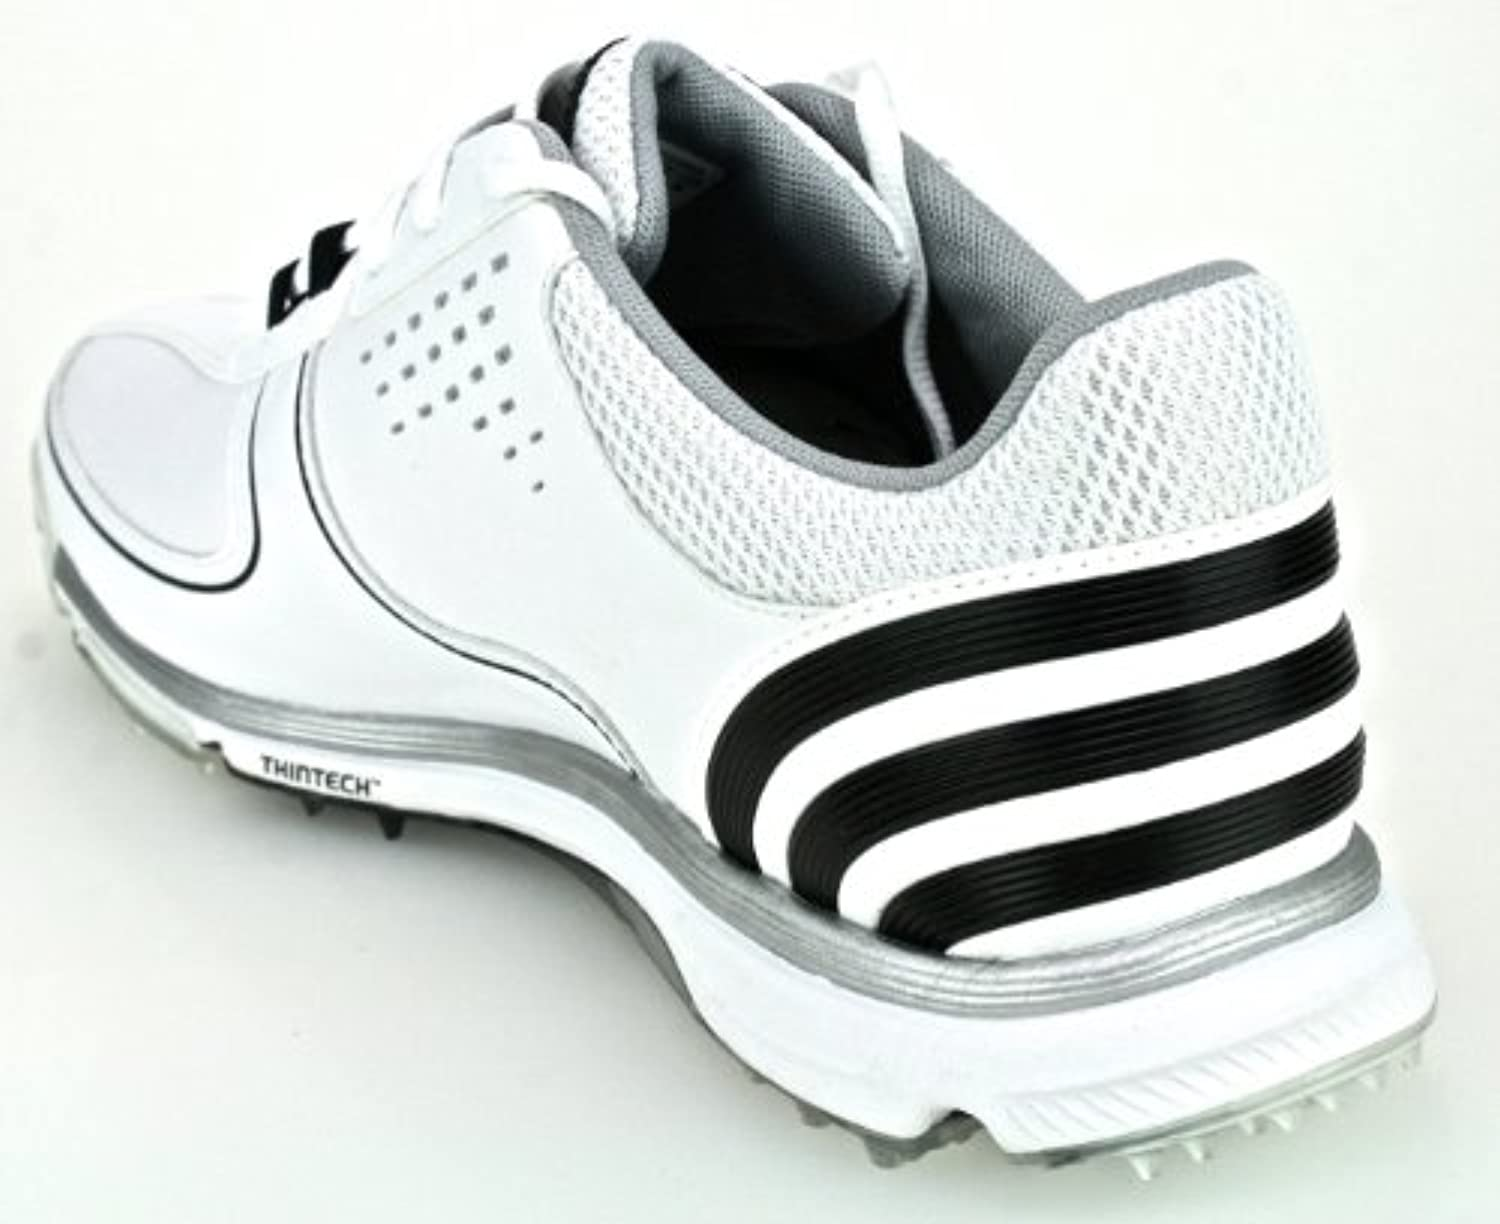 Adidas Traxion Lite Golf Shoes Review